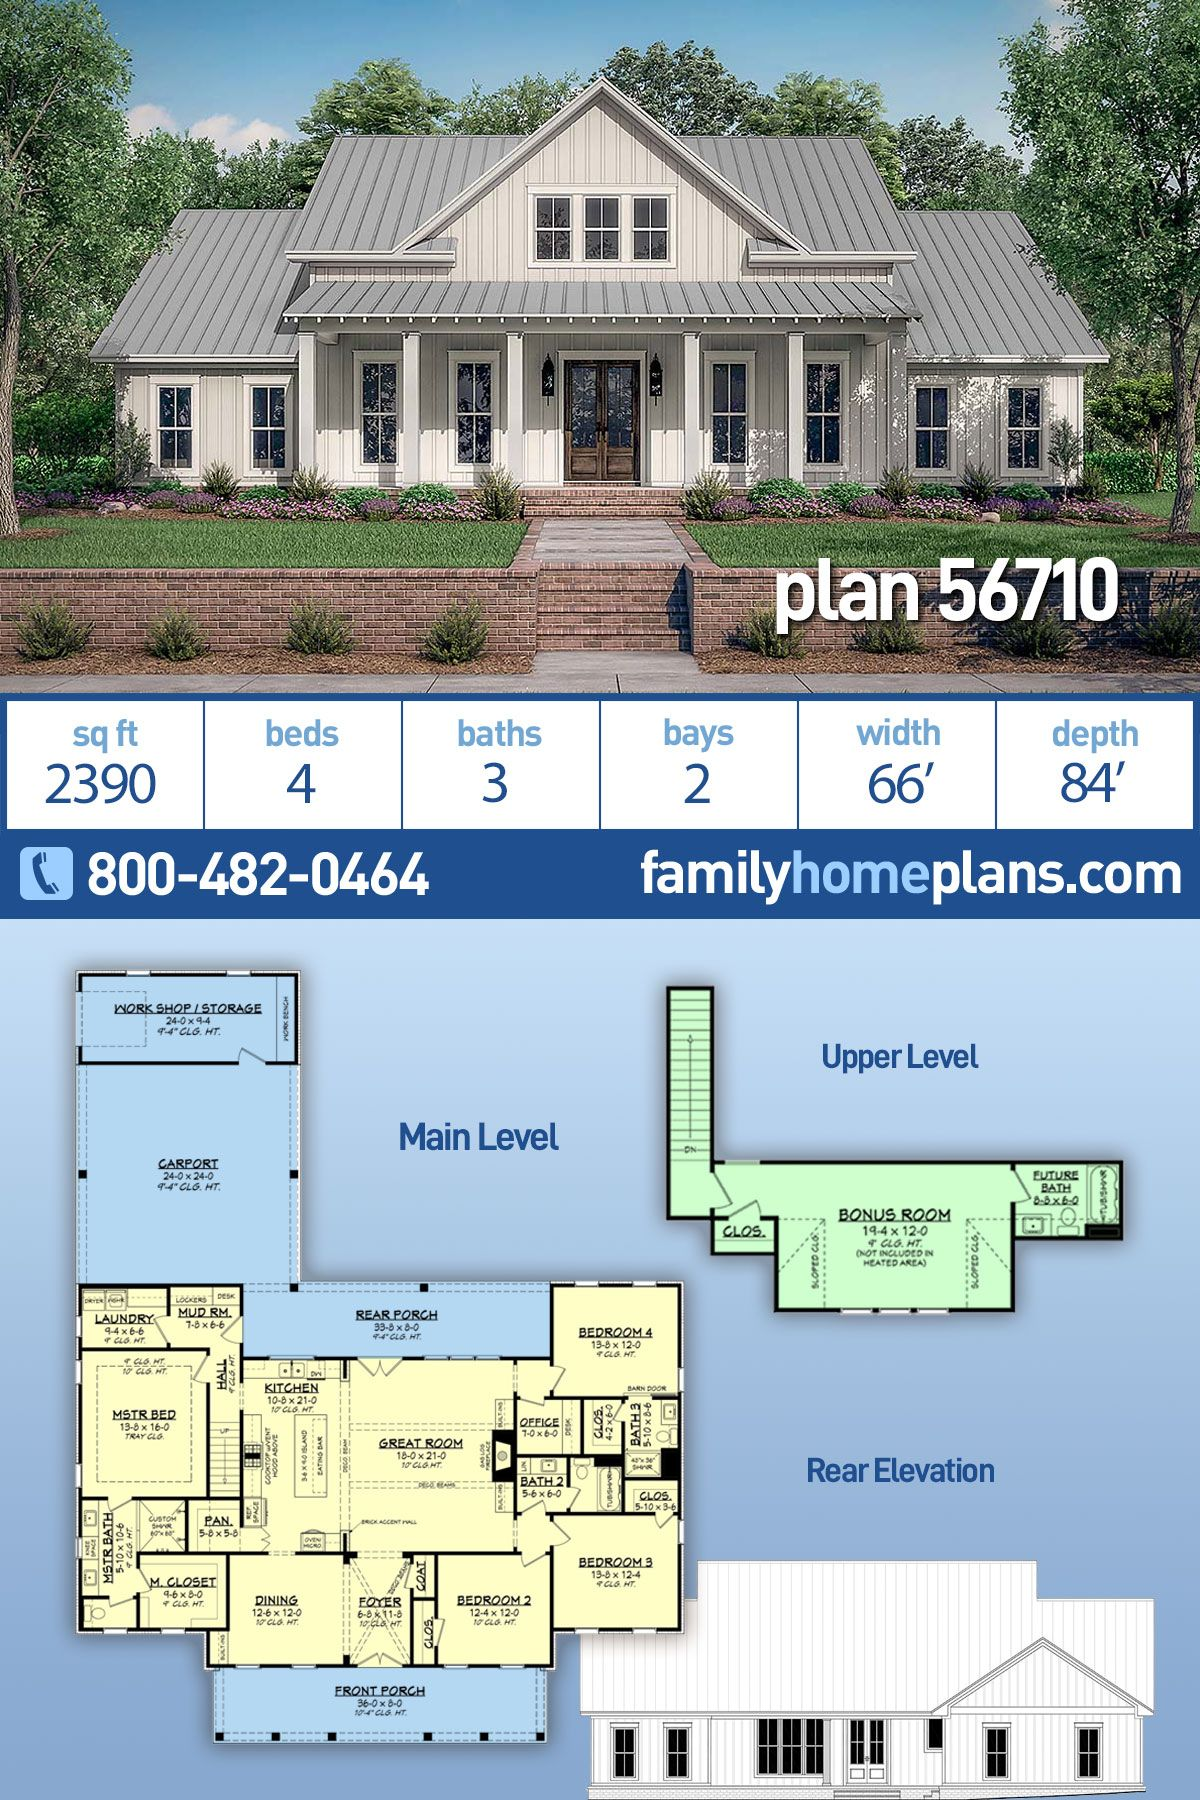 Photo of Modern Farmhouse Plan #56710 is 2390 Sq Ft, 4 Bedrooms, 3 Bathrooms and 2 Car Carport with Work Shop